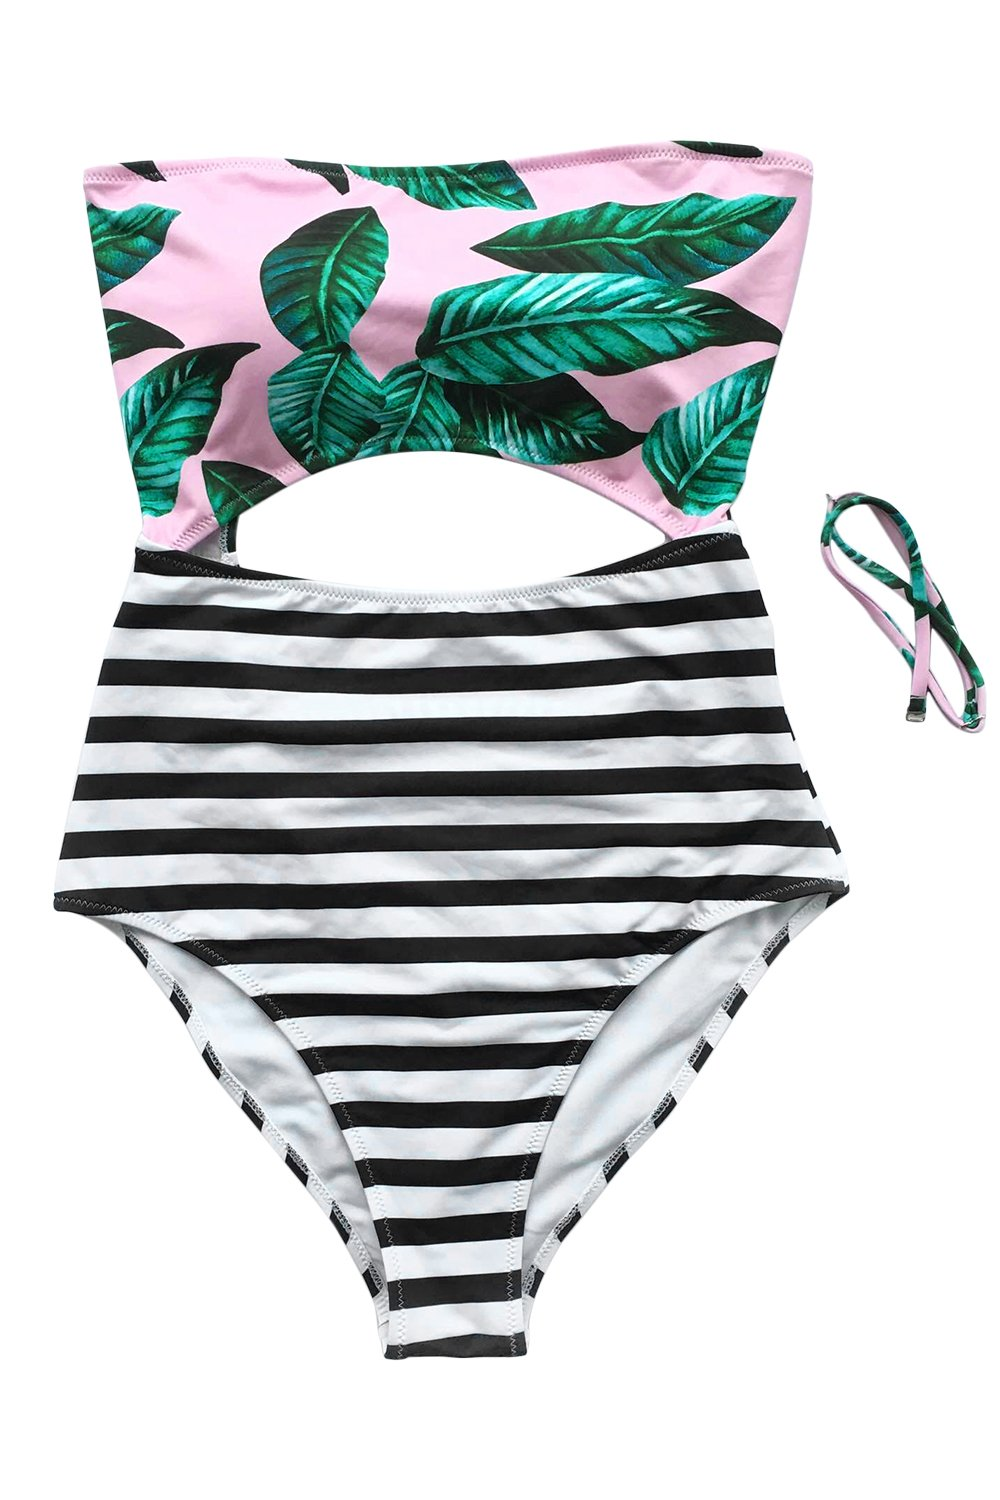 CUPSHE Women's Leaves Printing Stripe Halter One-Piece Padding Swimsuit with Cutout (L) by CUPSHE